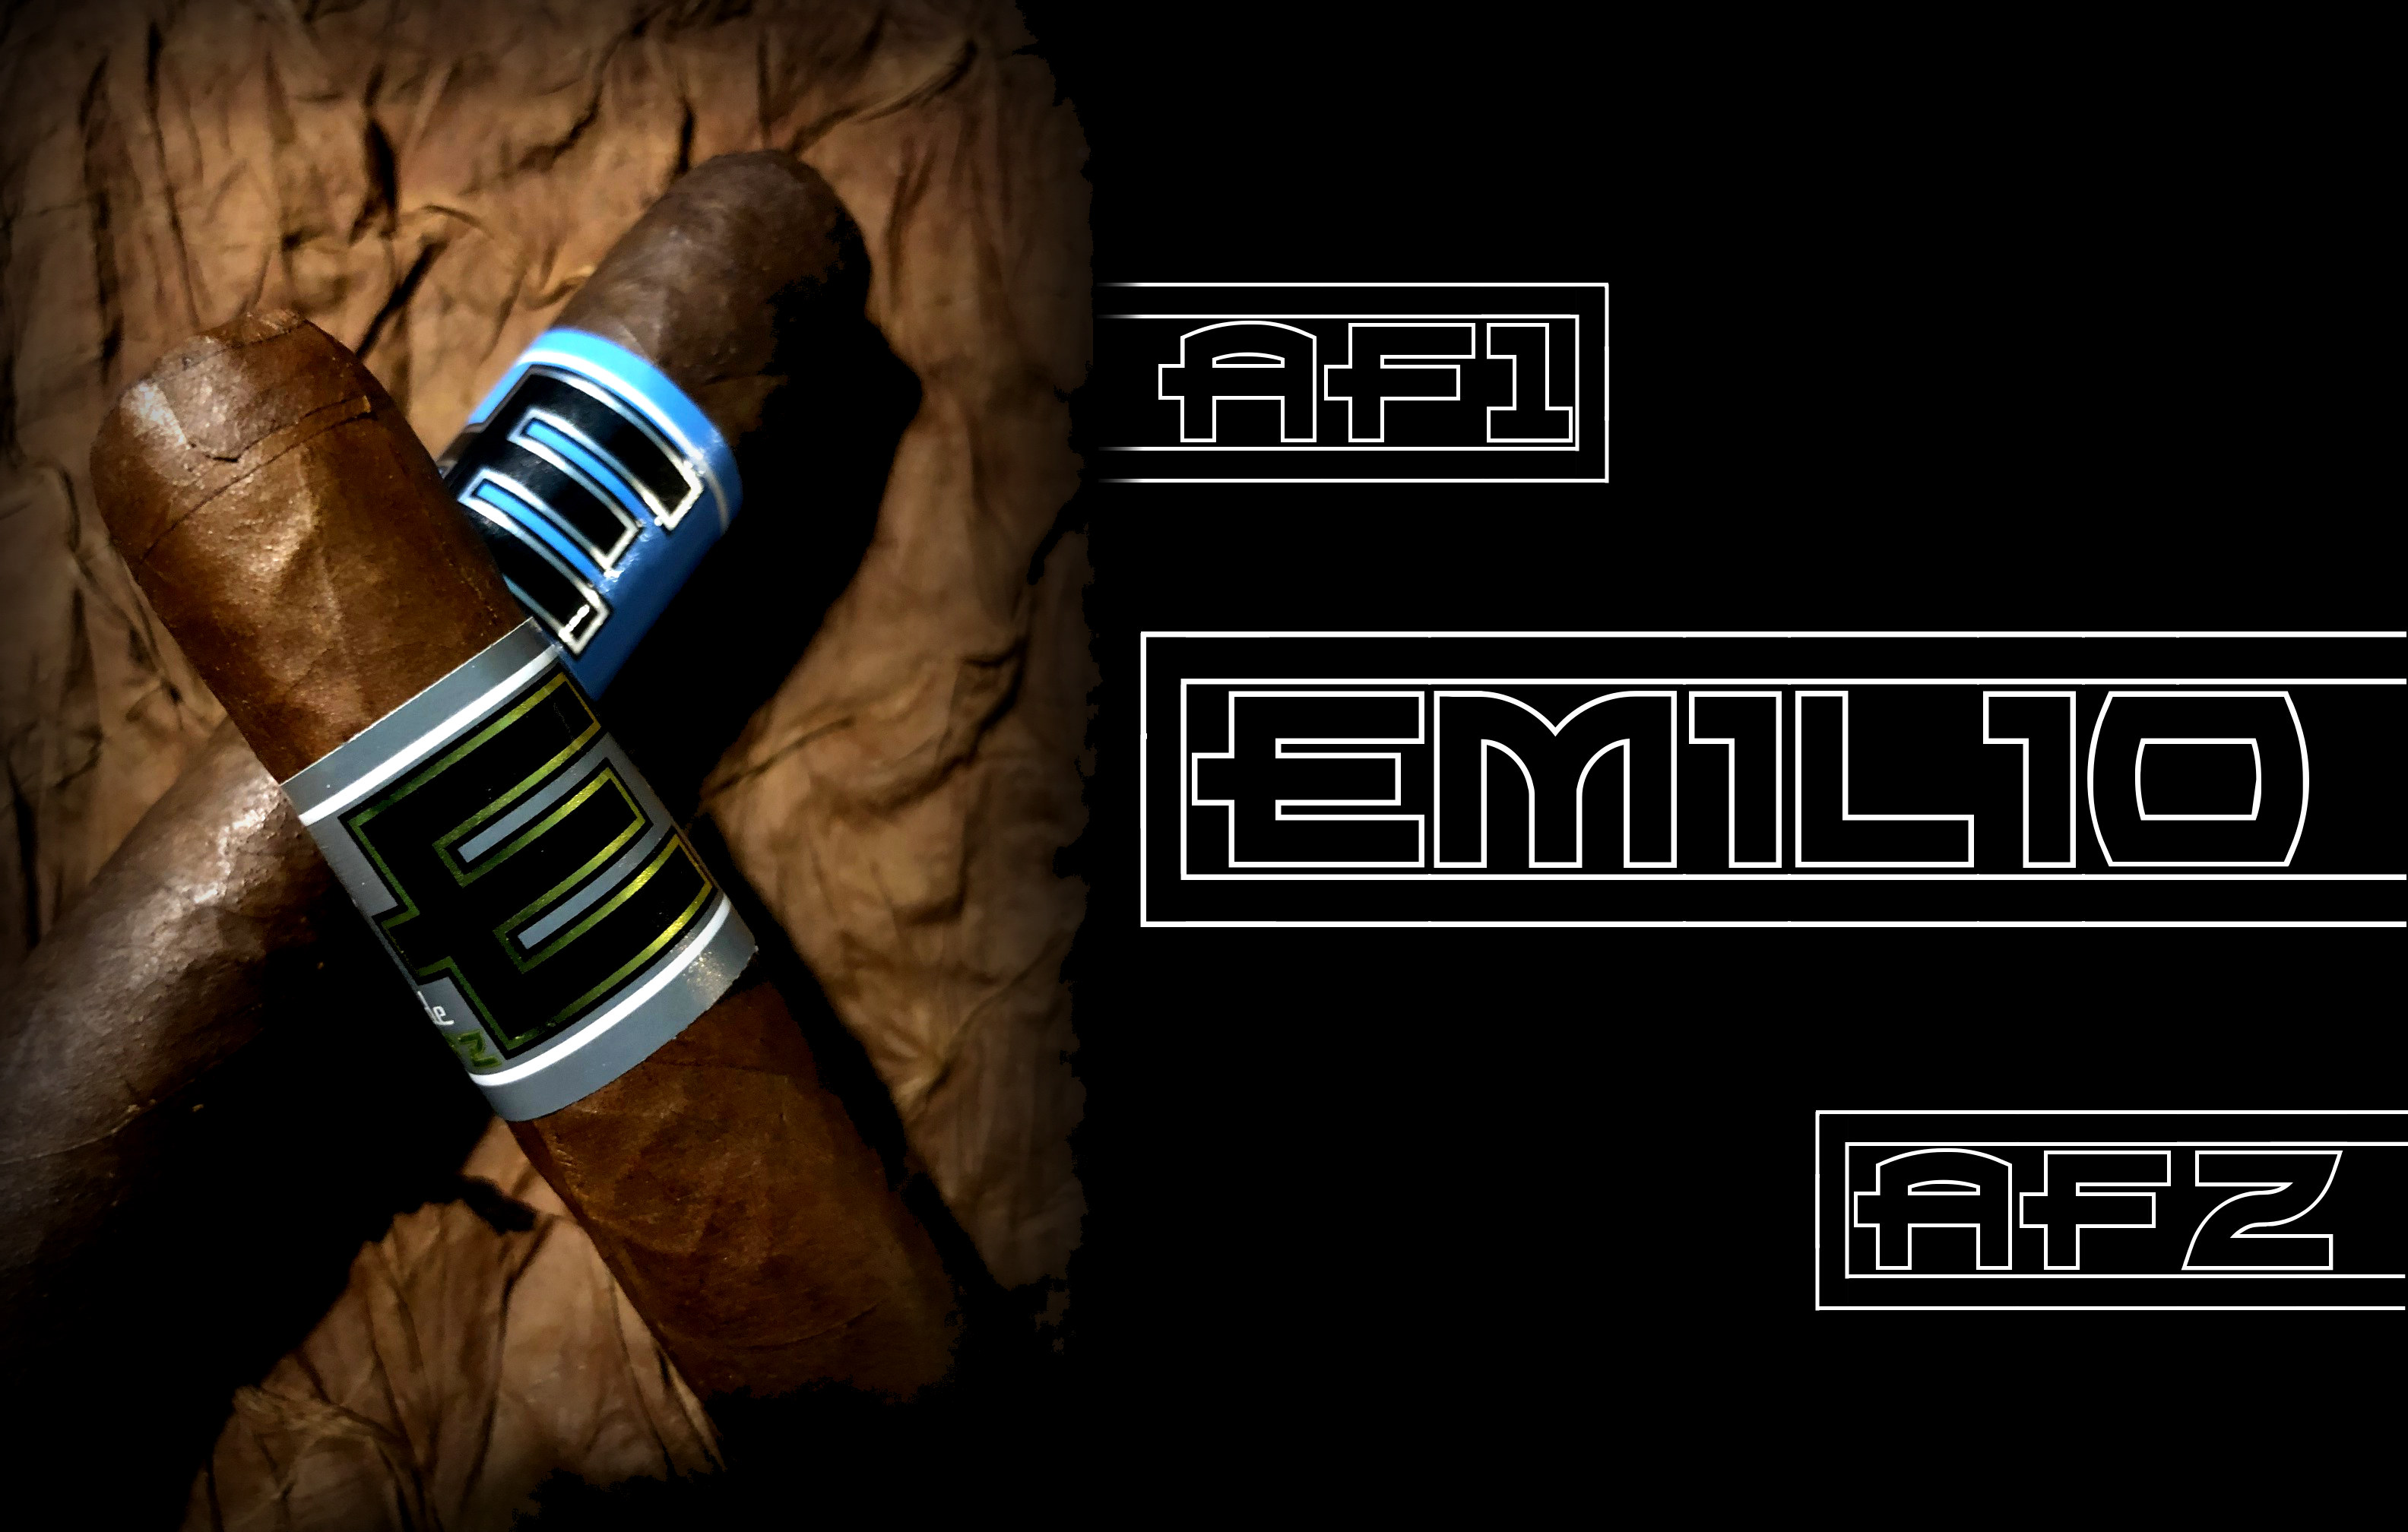 Cigar News: Emilio AF1 and AF2 Relaunched